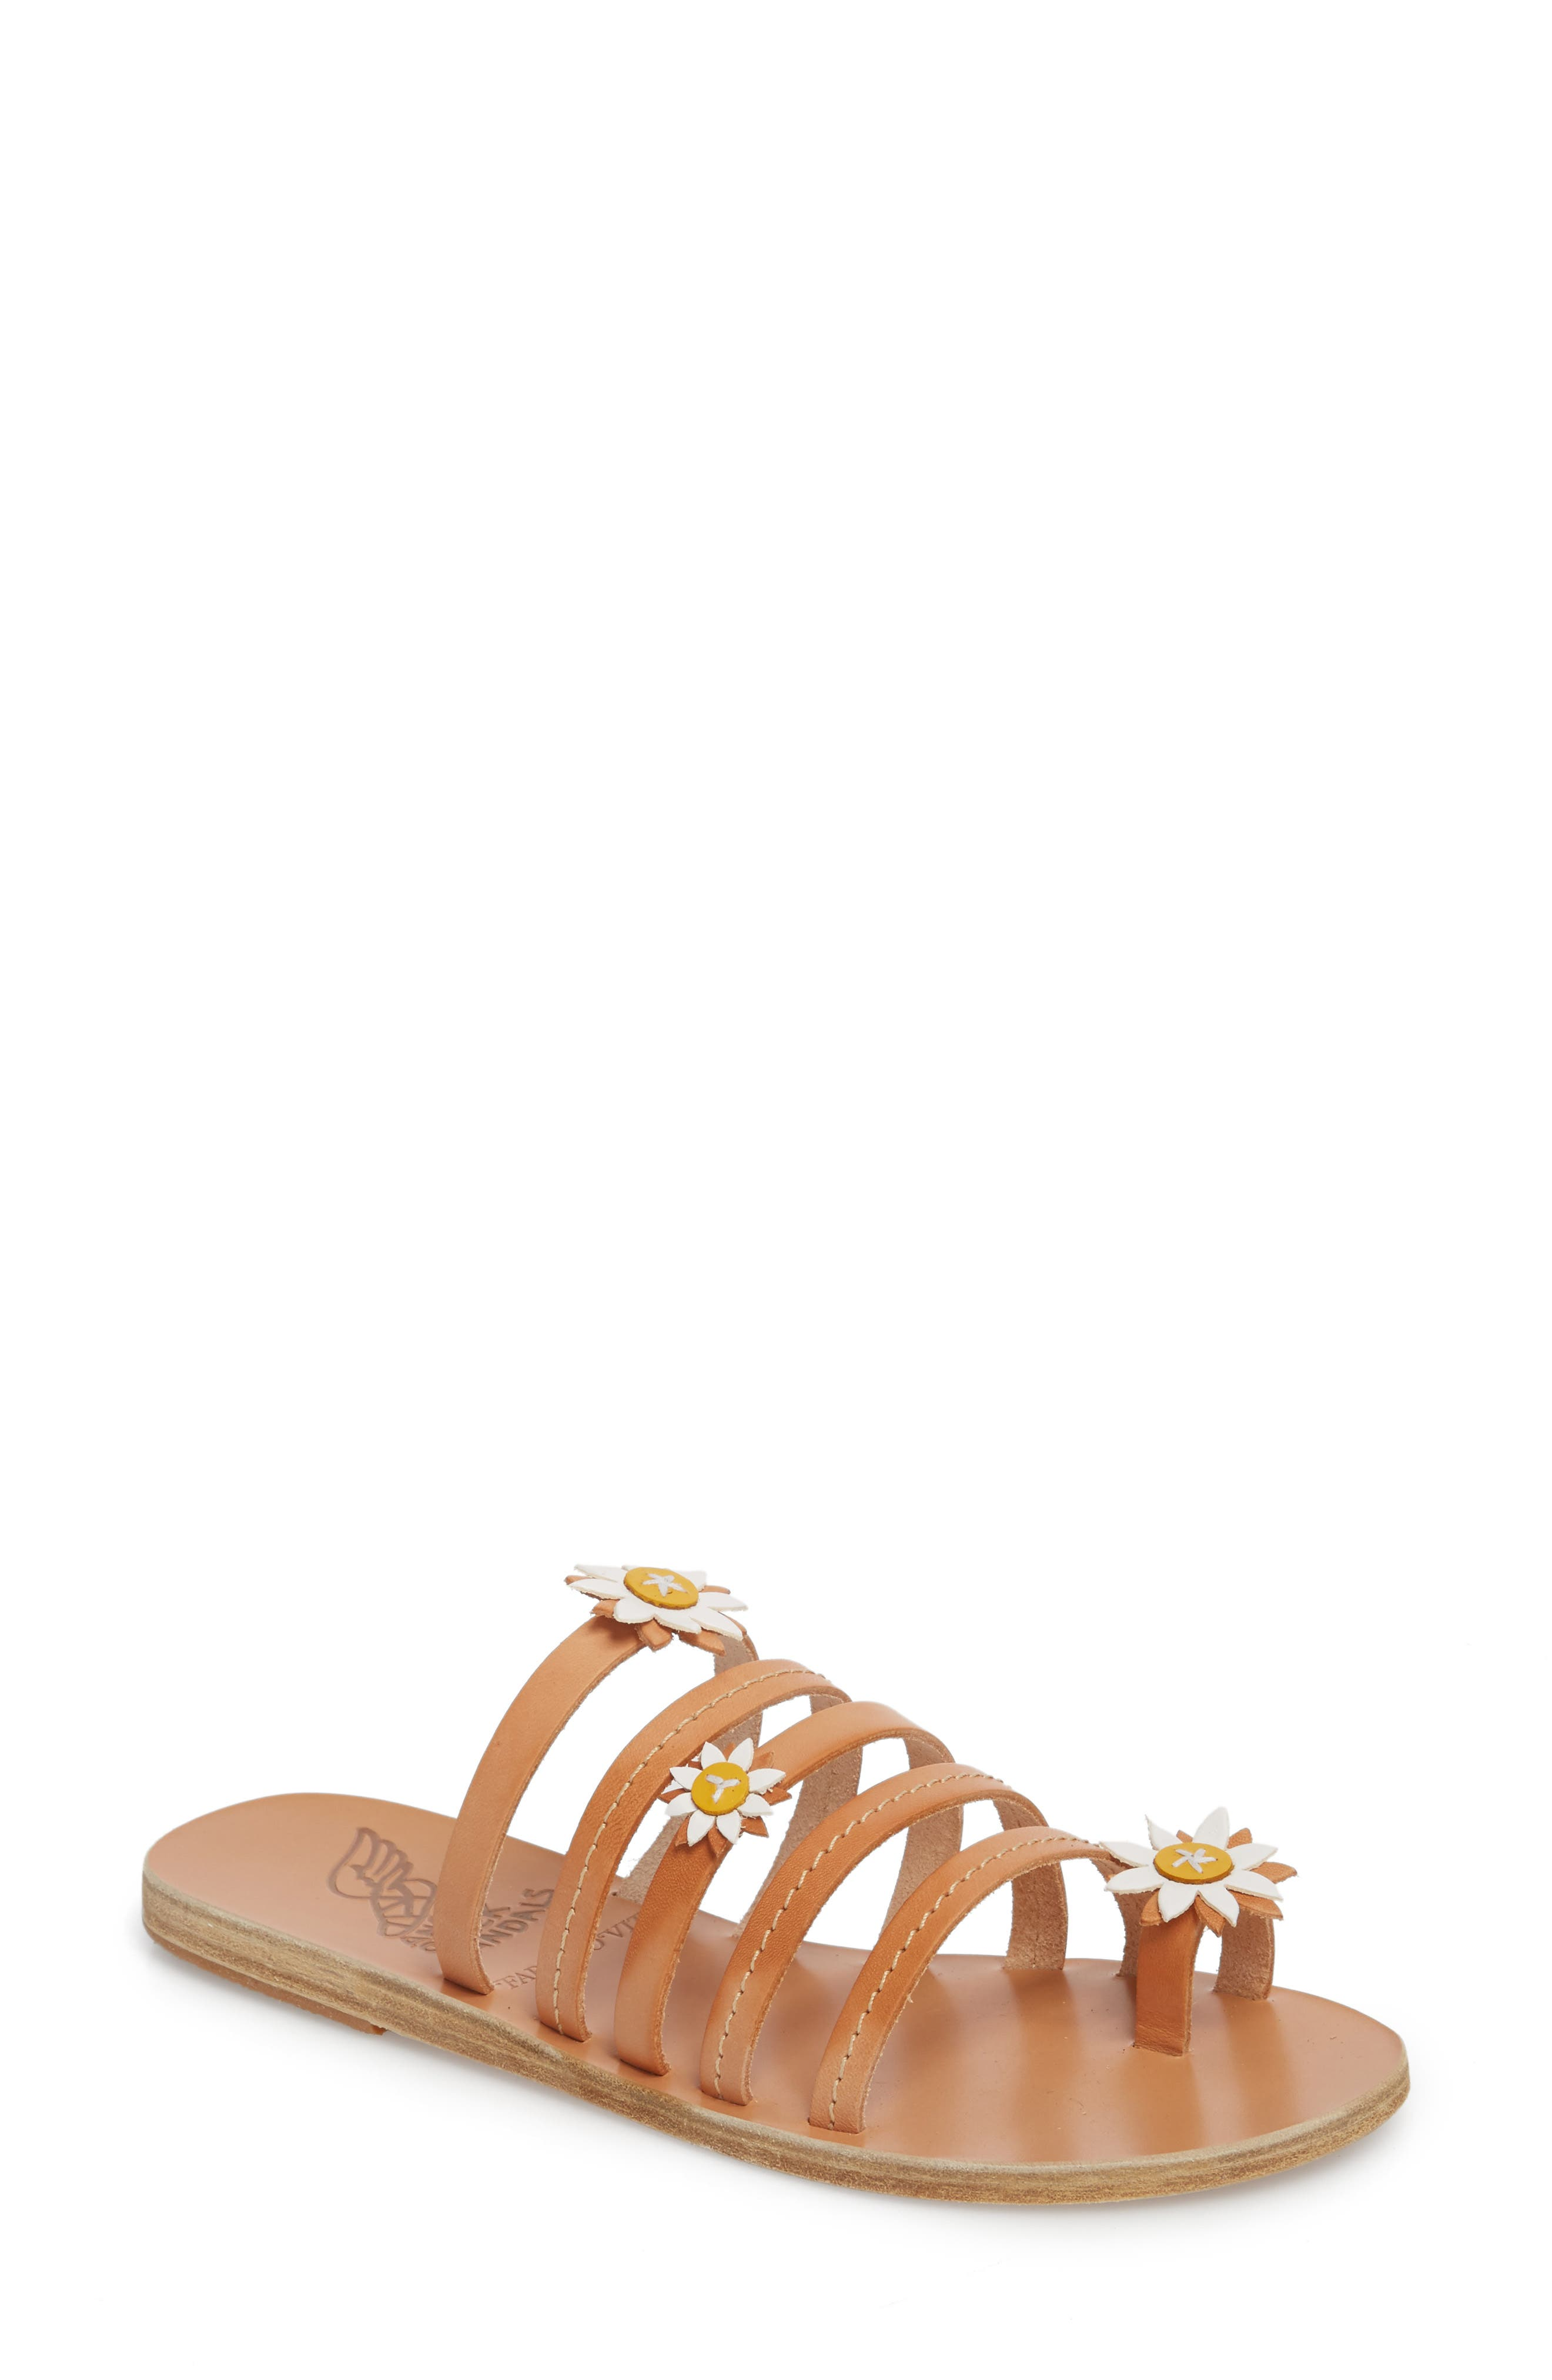 Victoria Sandal,                         Main,                         color, Natural